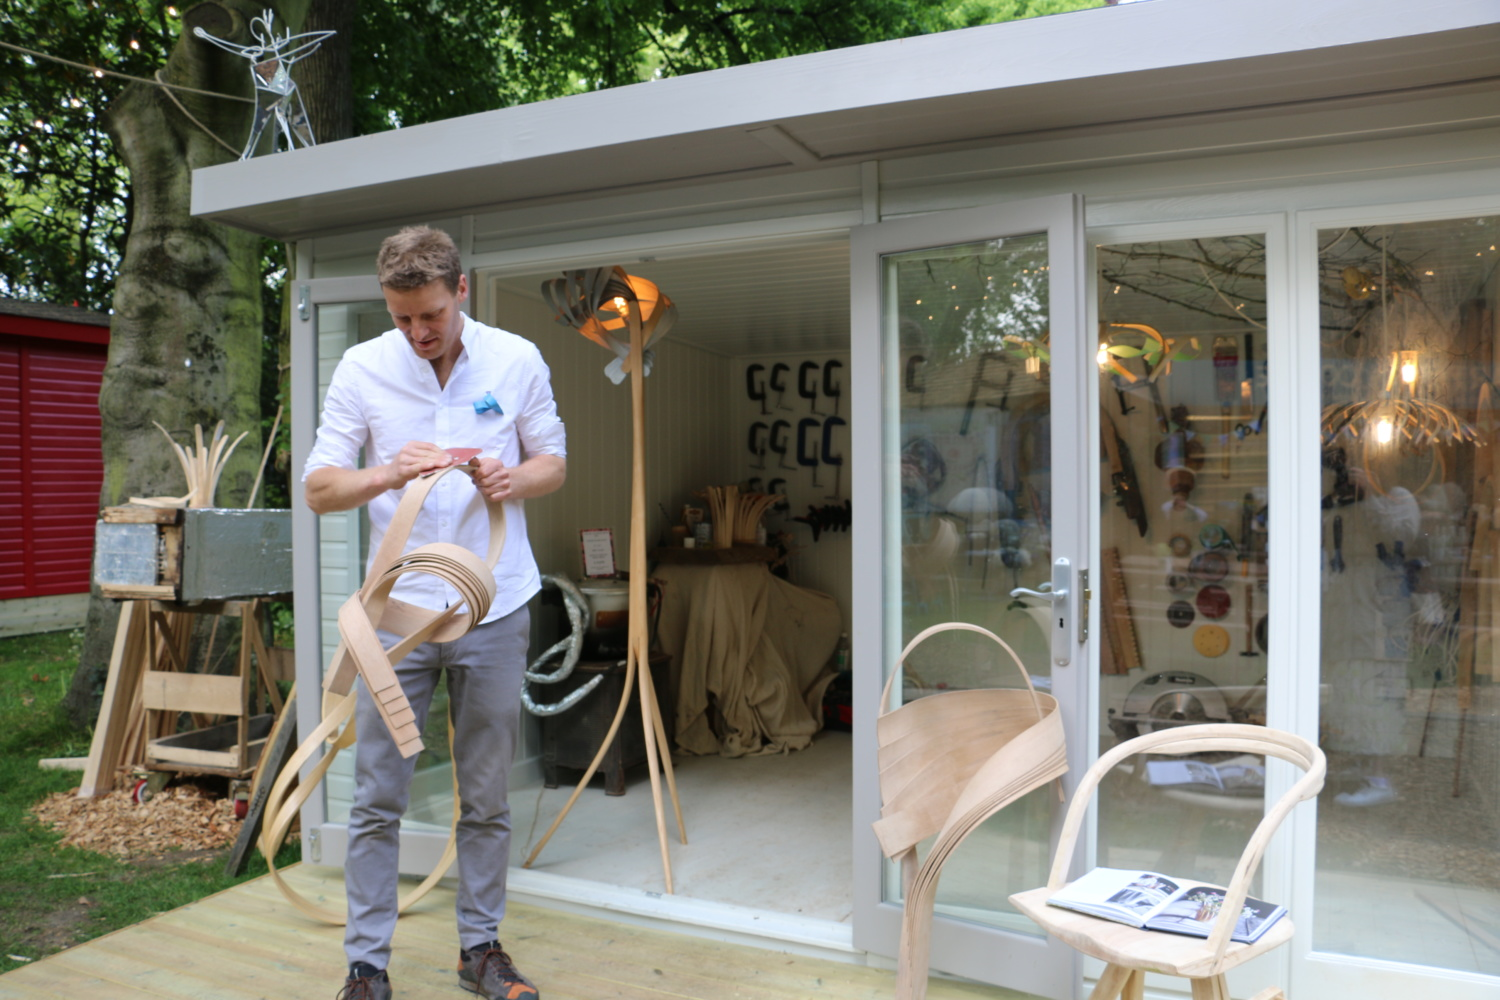 Artisan working outside Studio building at Chelsea Flower Show 2019